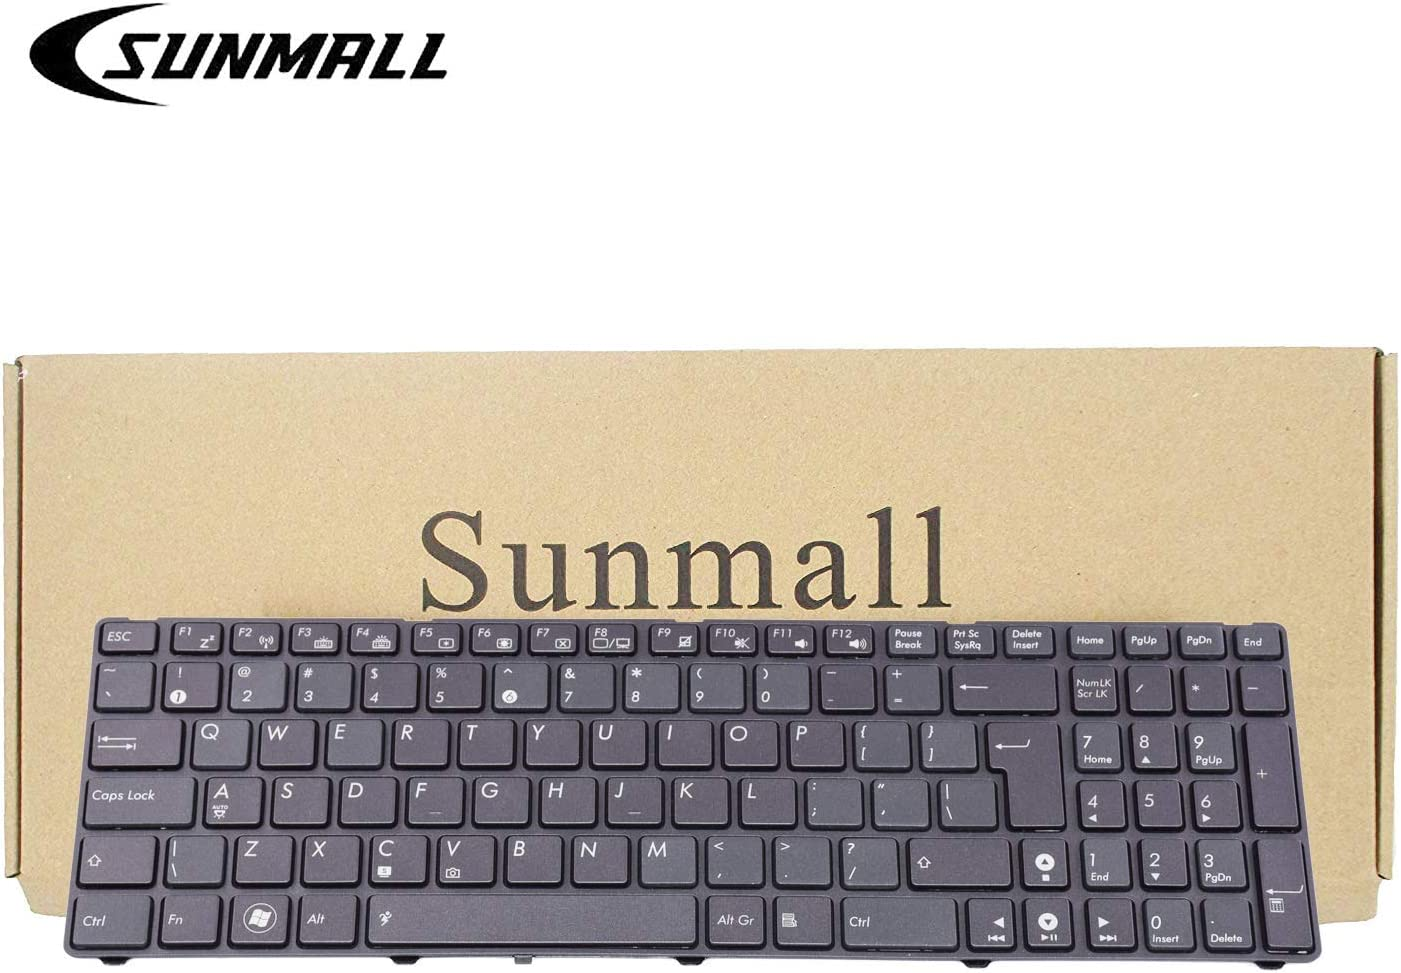 SUNMALL Keyboard Replacement with Backlit & Big Enter Key Compatible with ASUS K52 K53 K54 K55 K72 K73 F50 F55 F70 F75 A52 A53E A54 A55D G51 G53 G56 X52 X53E X54 X55 Series Laptop Black US Layout